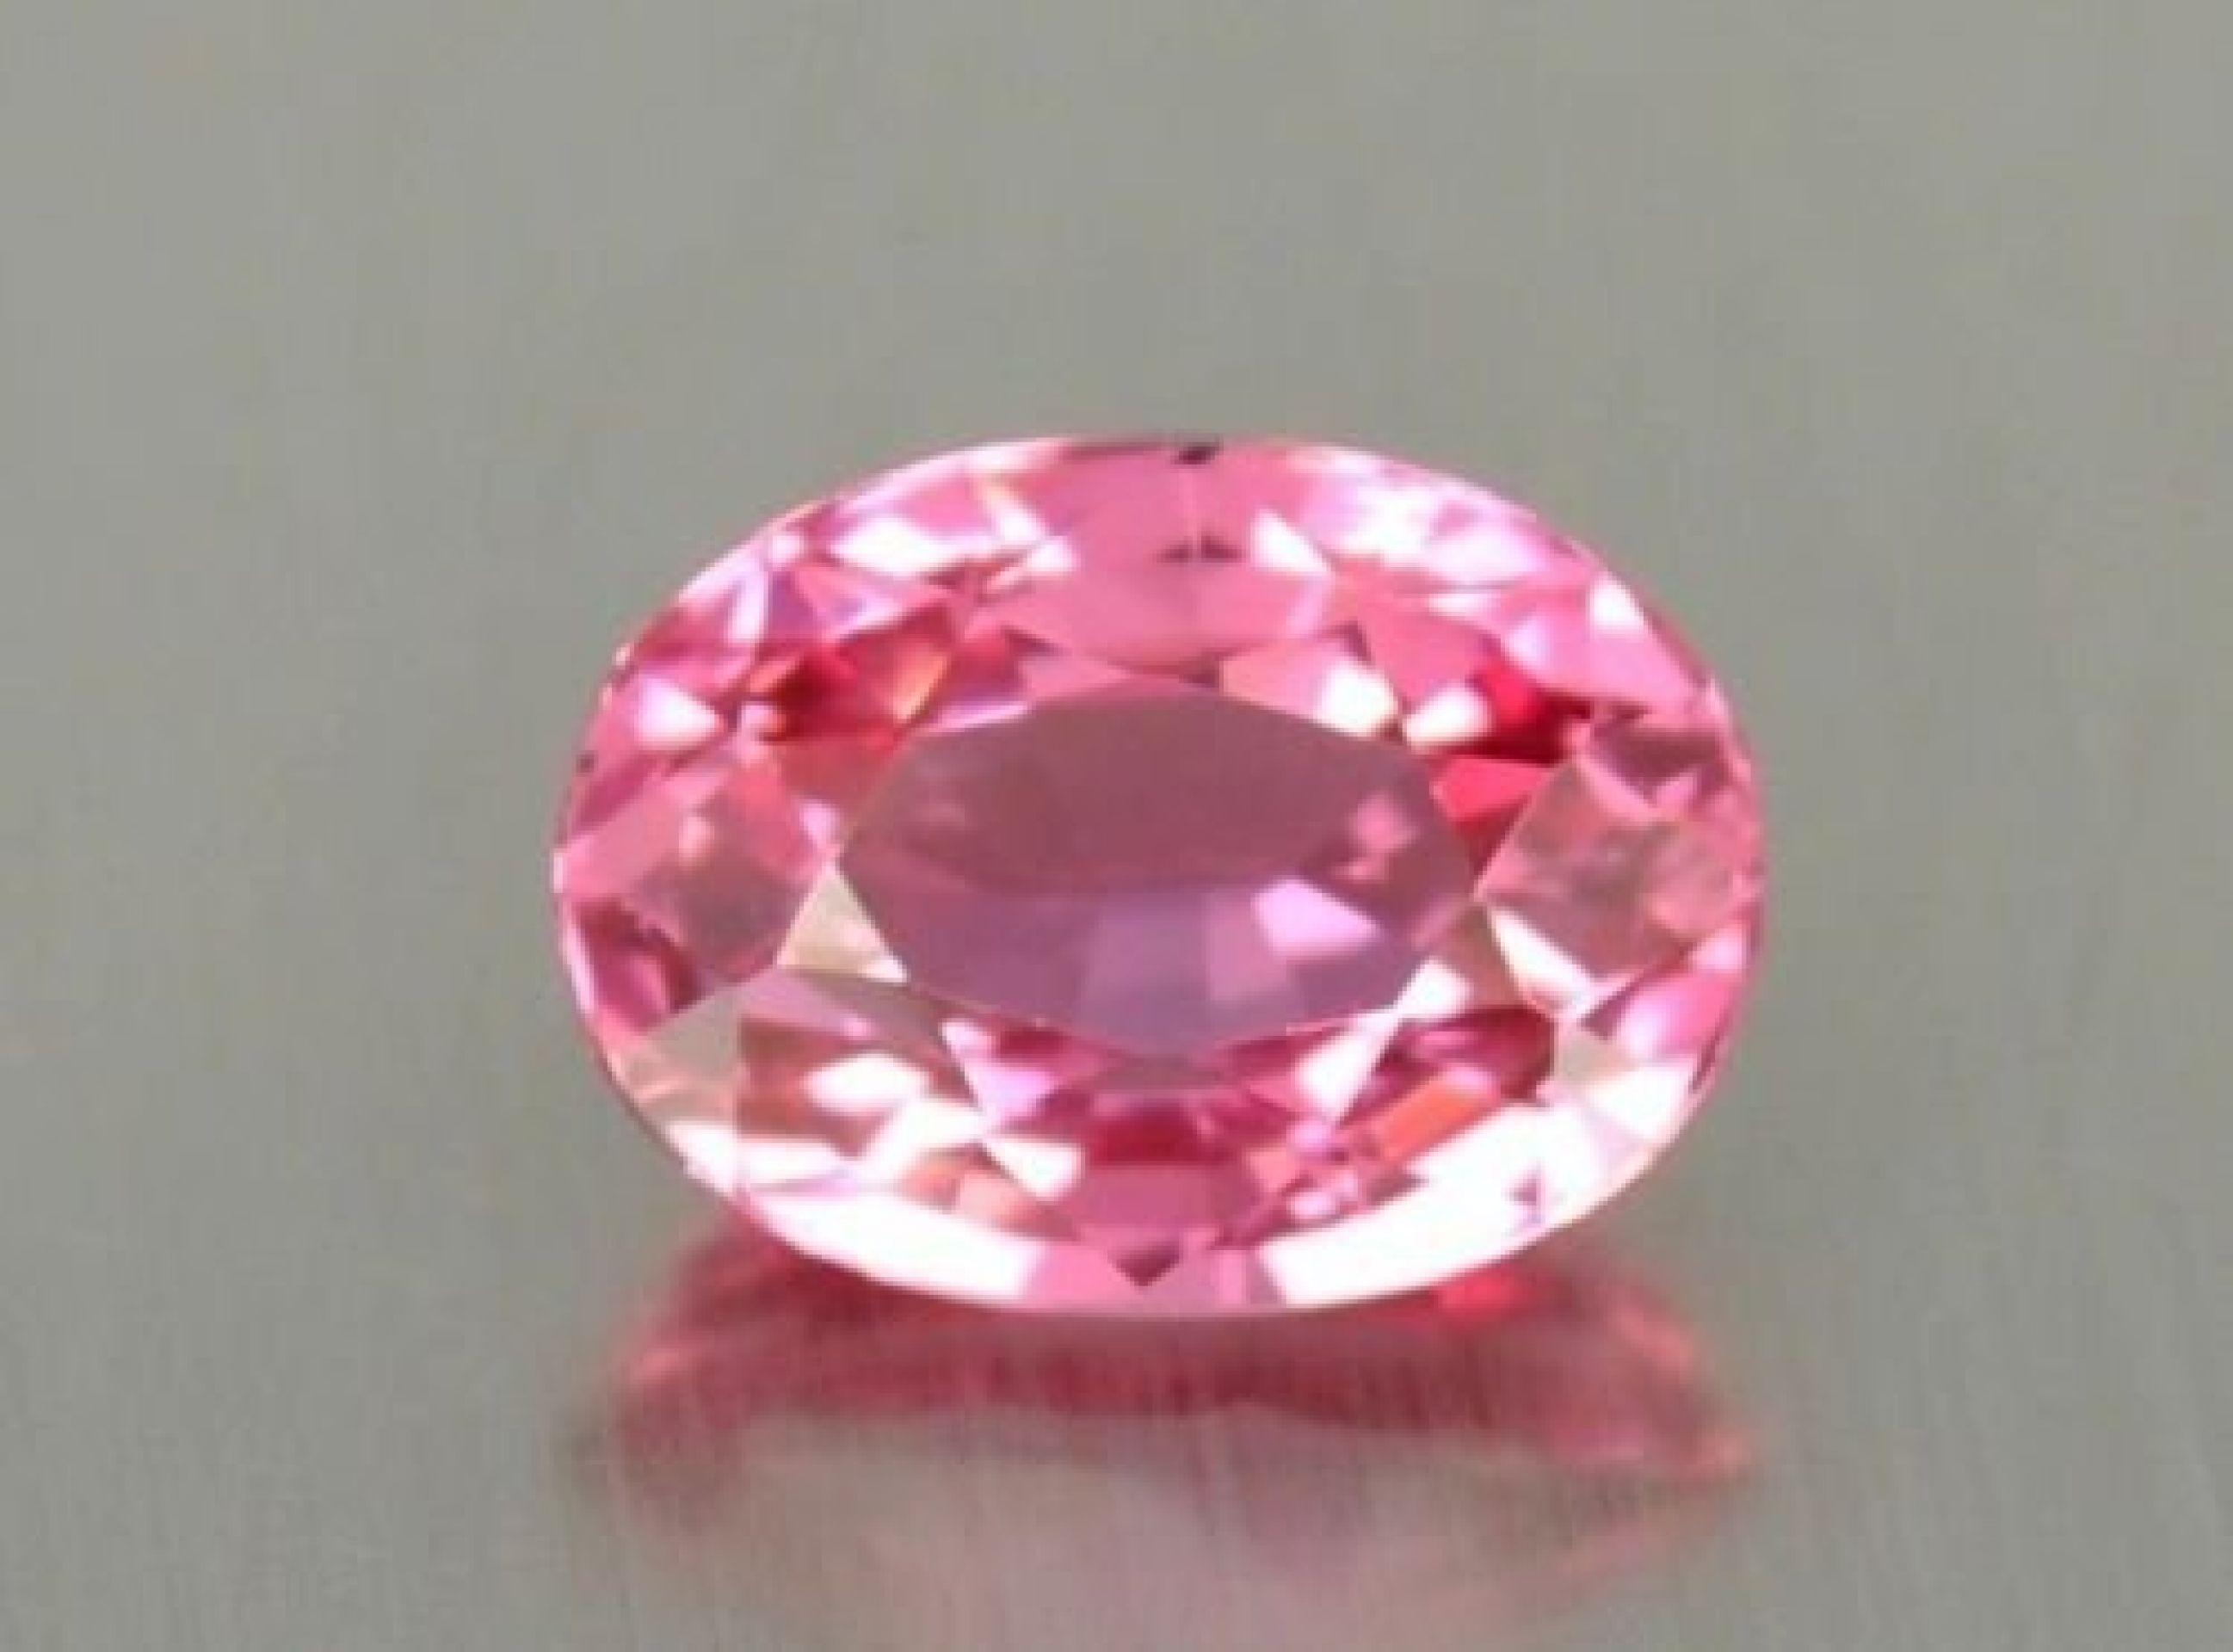 4.40 CT IF PINK 100% NATURAL SPINEL FLAWLESS GEMSTONES CUT 10 X 7.8 X 6MM